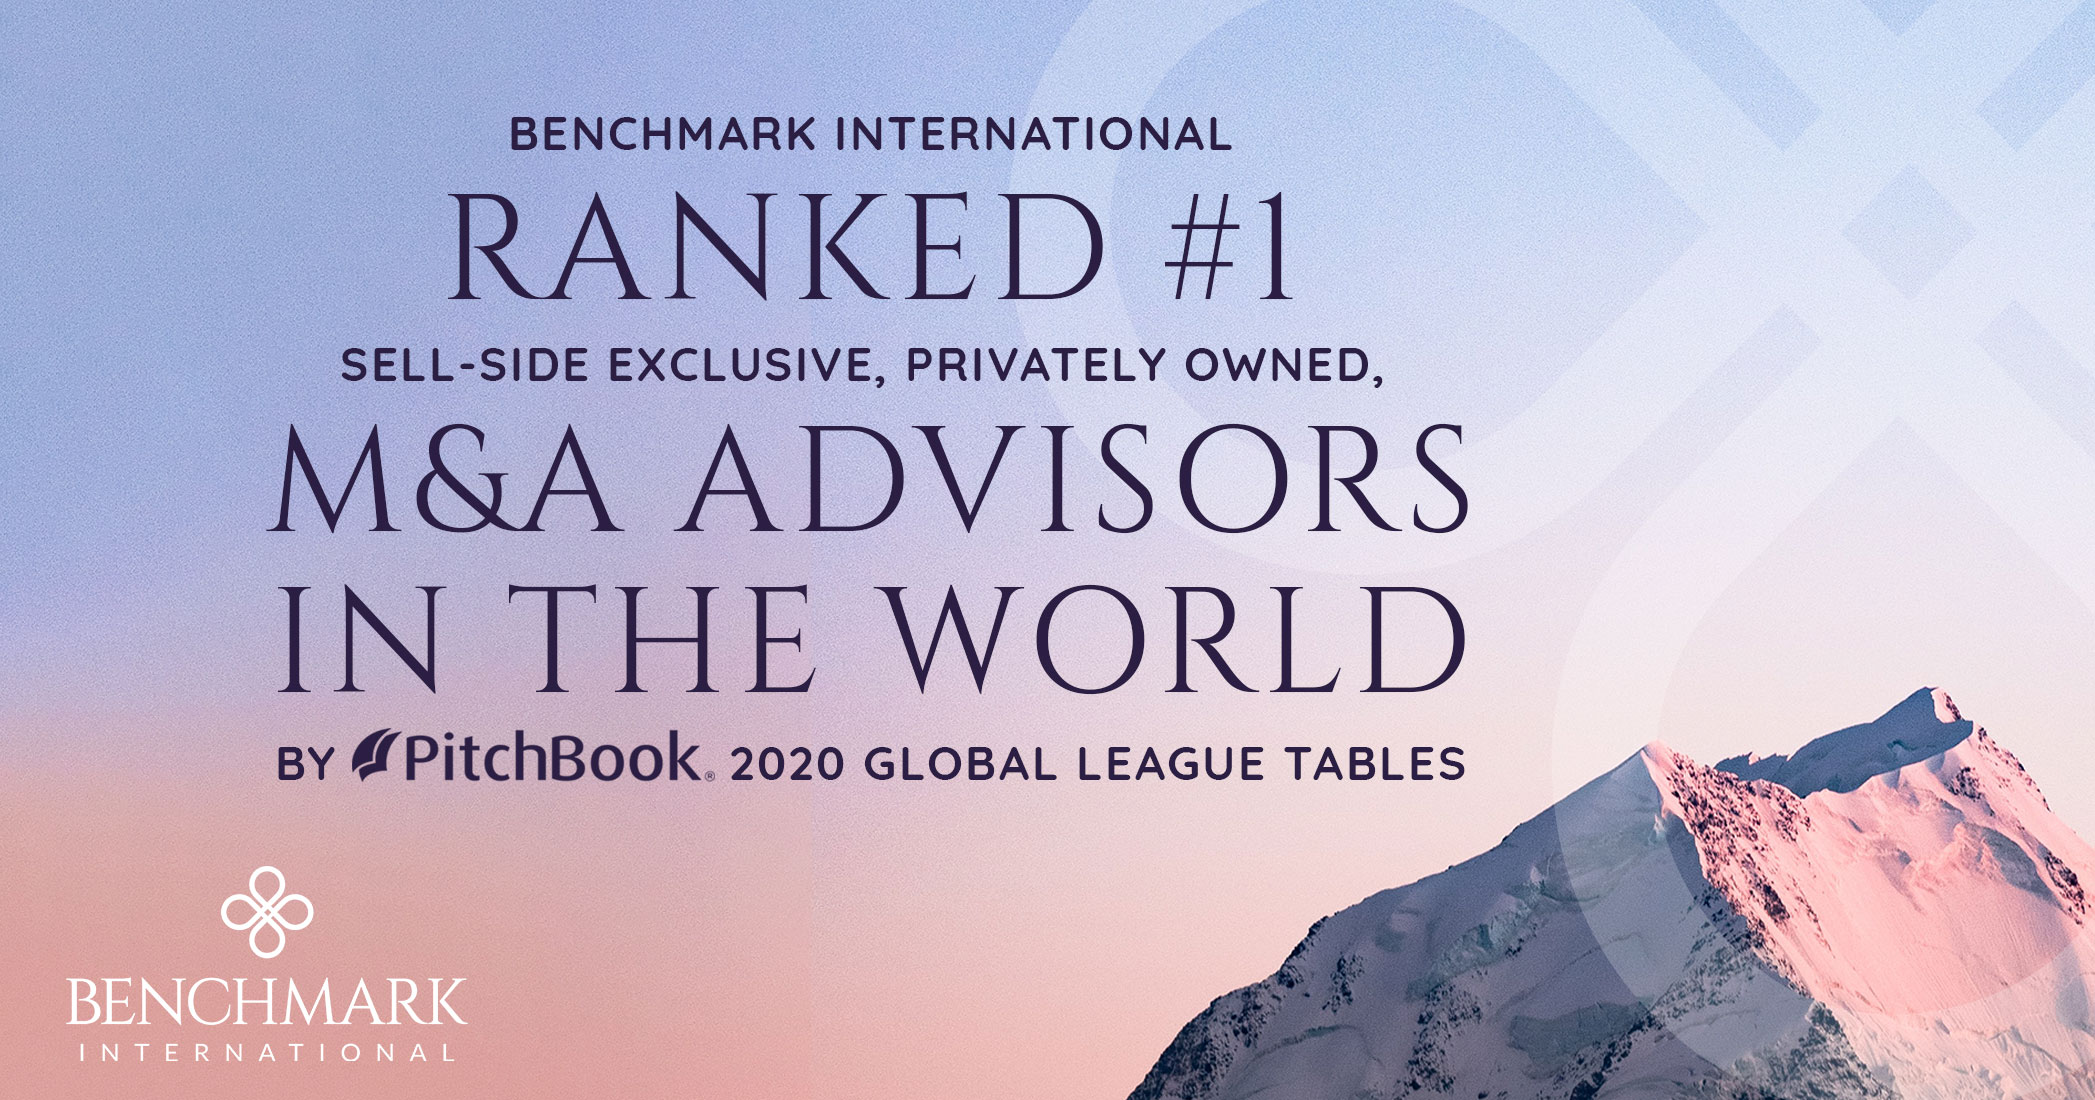 Benchmark International Ranked #1 Sell-Side, privately owned M&A Advisors in the World by Pitchbook